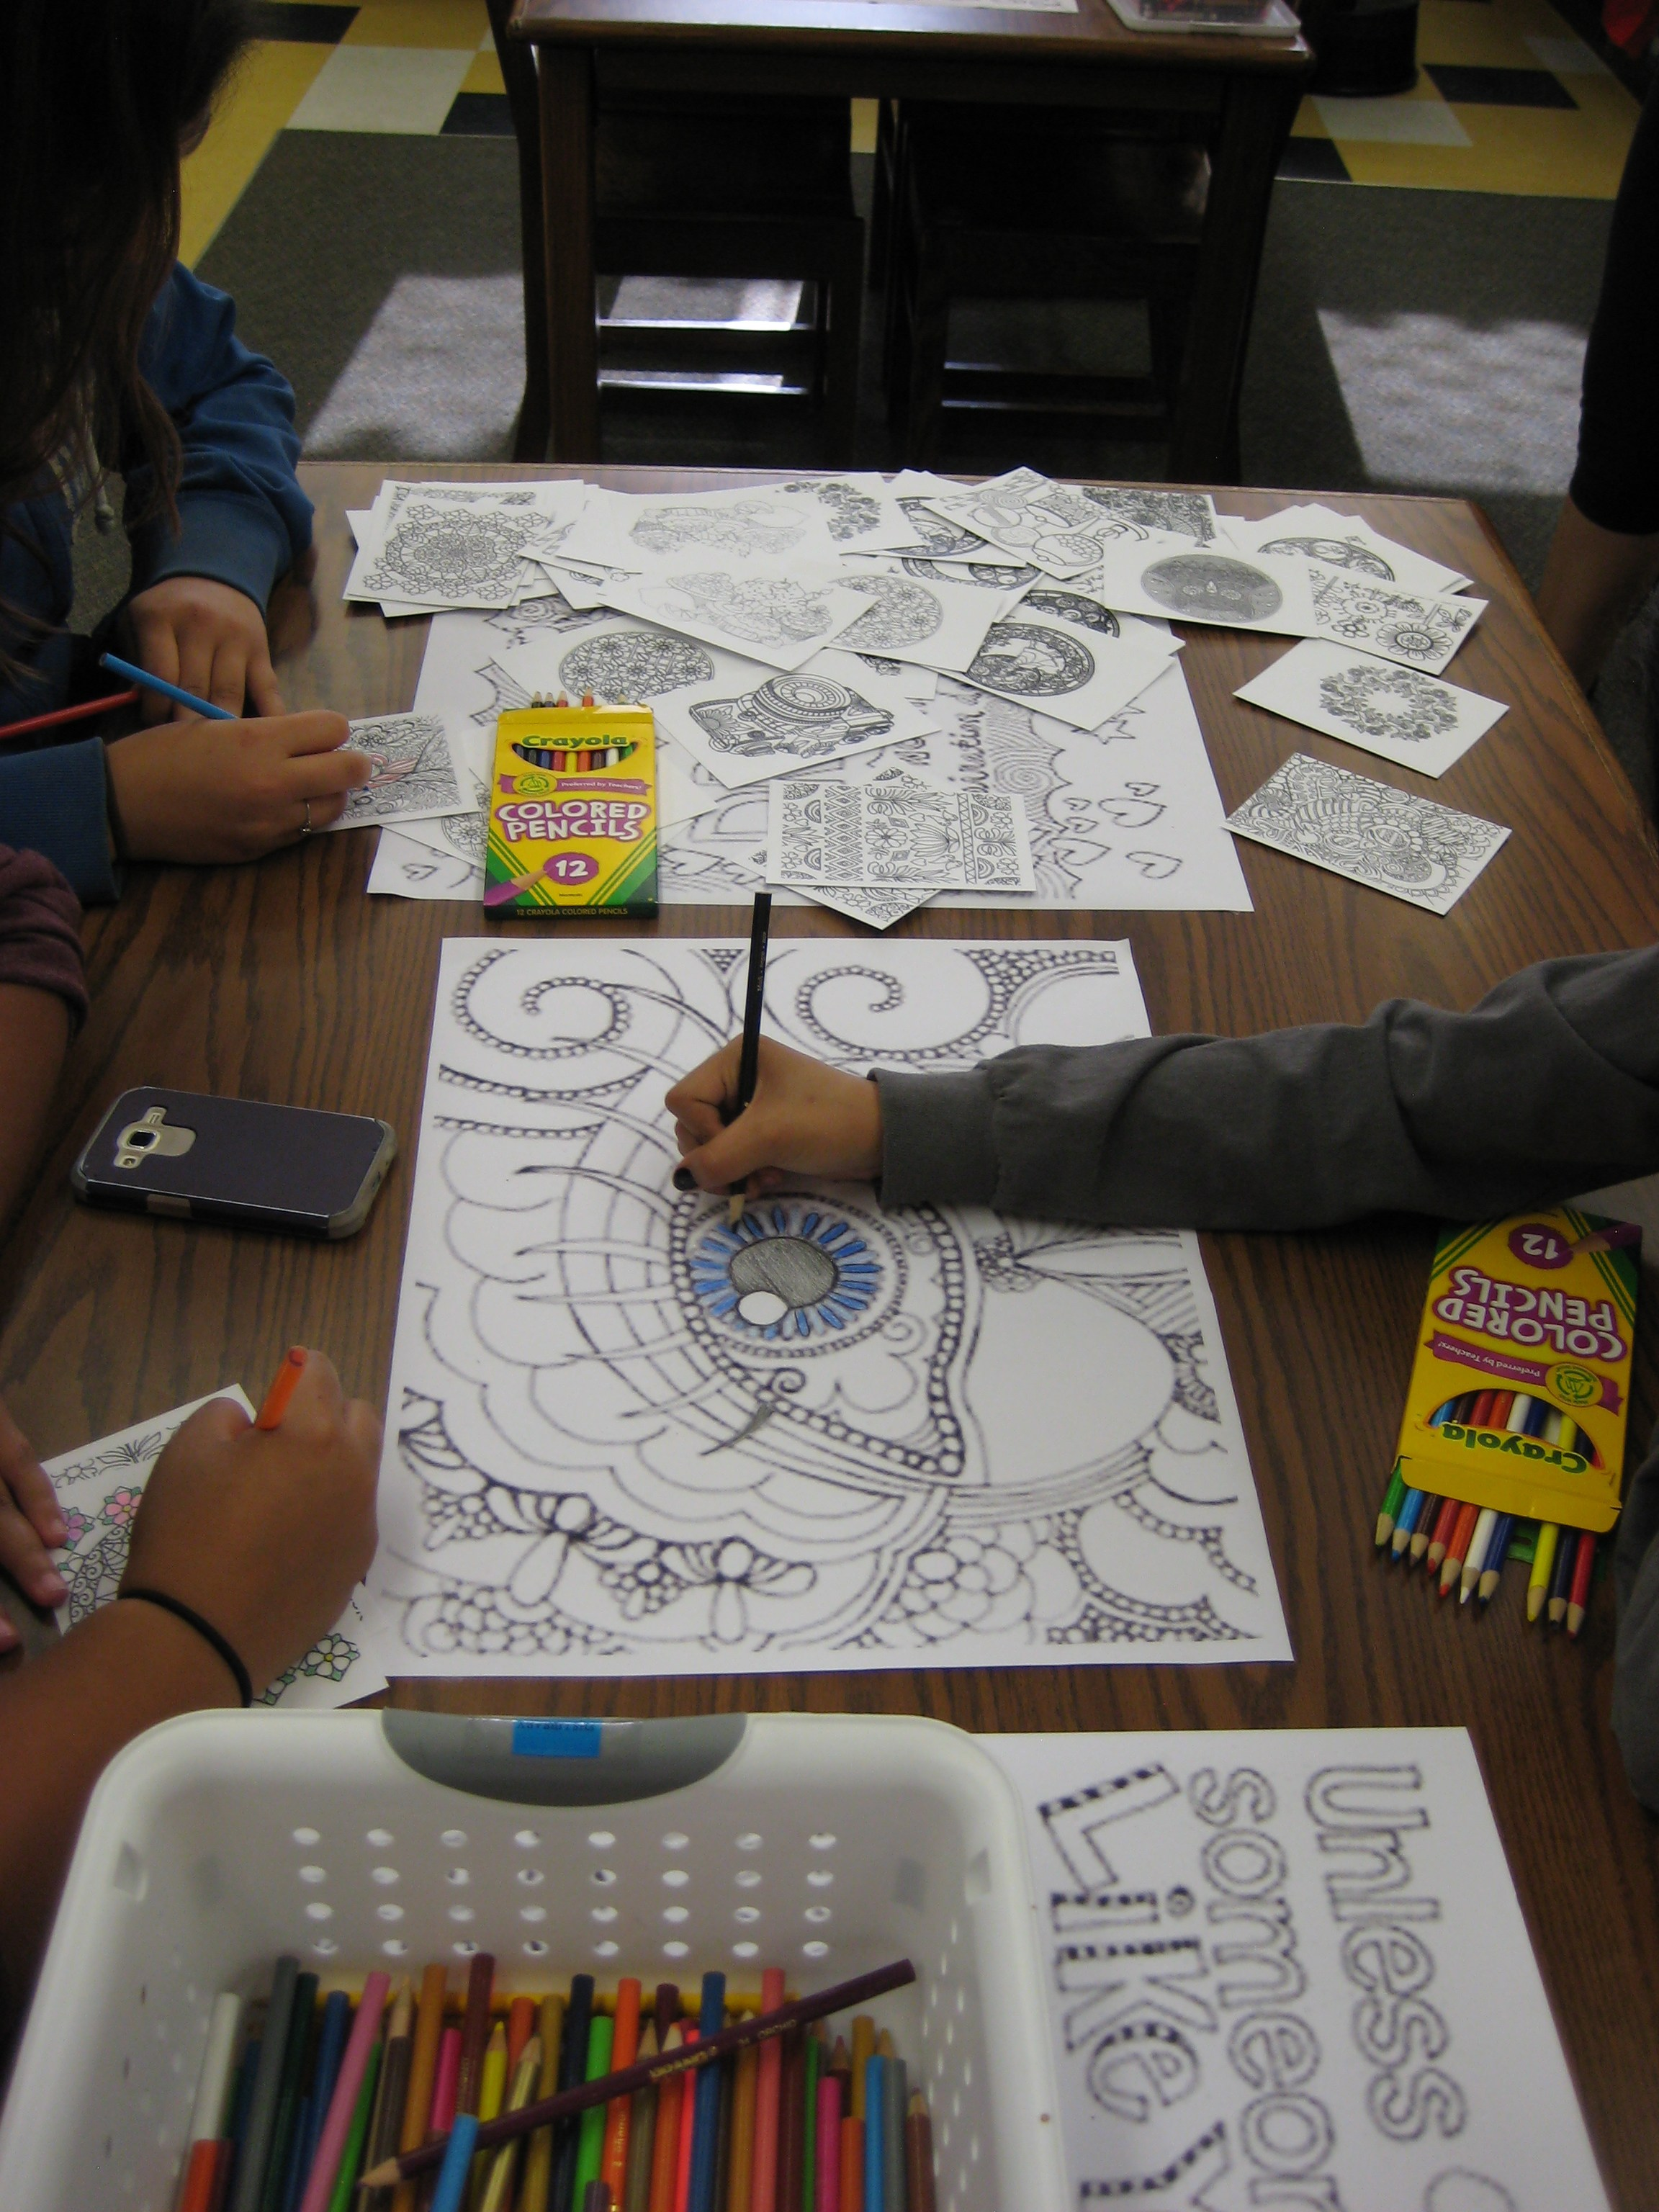 Coloring station at 2016 Festival of Arts